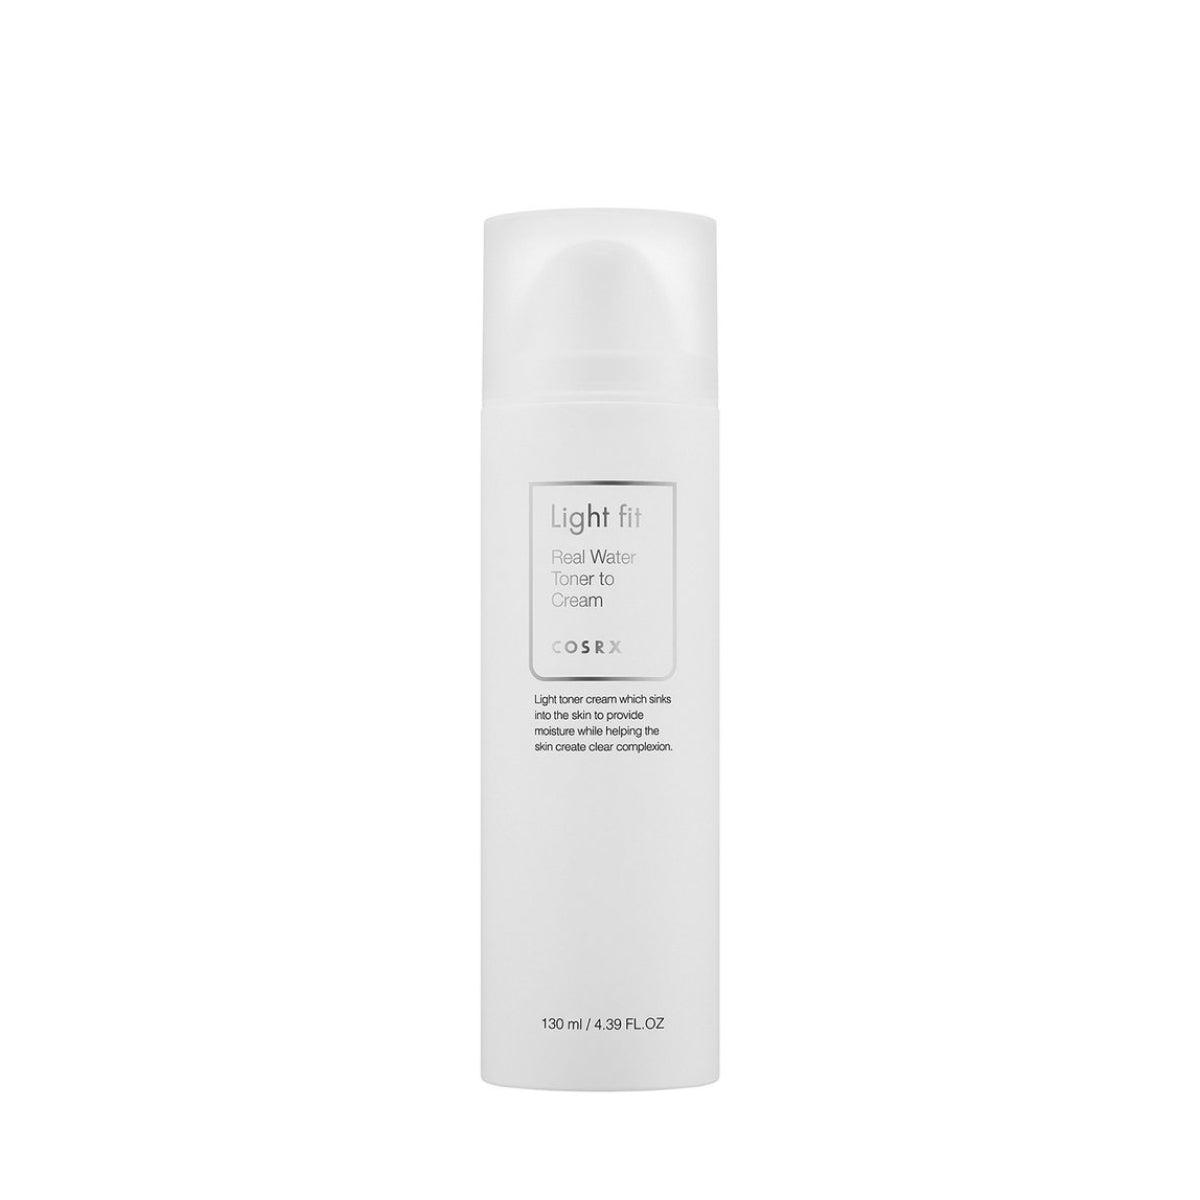 Cosrx - Light Fit Real Water Toner to Cream 130ml